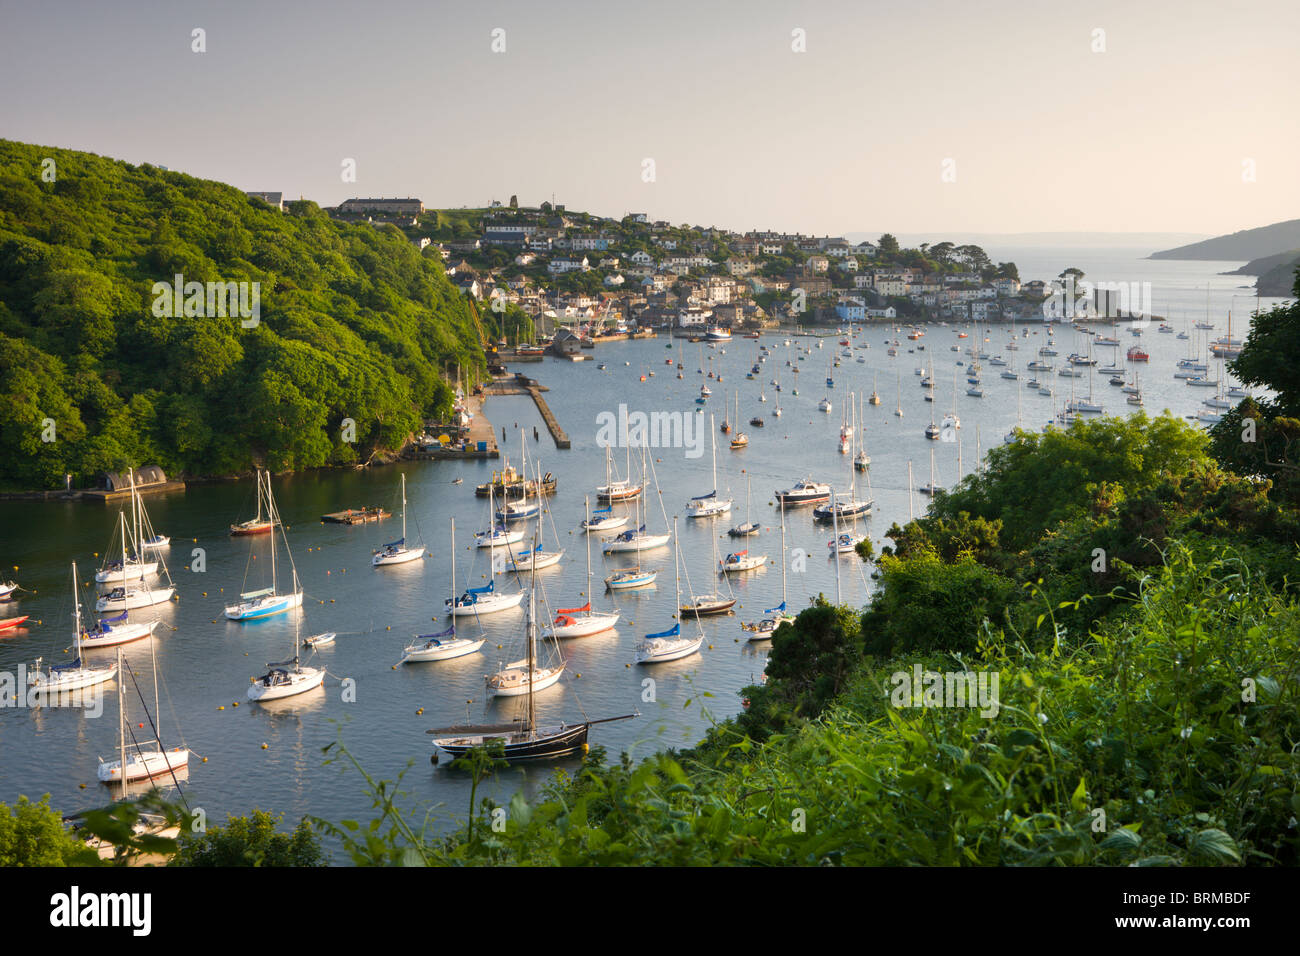 Pont Pill, Polruan and the Fowey Estuary from Hall Walk near Bodinnick, Cornwall, England. Summer (June) 2010. - Stock Image